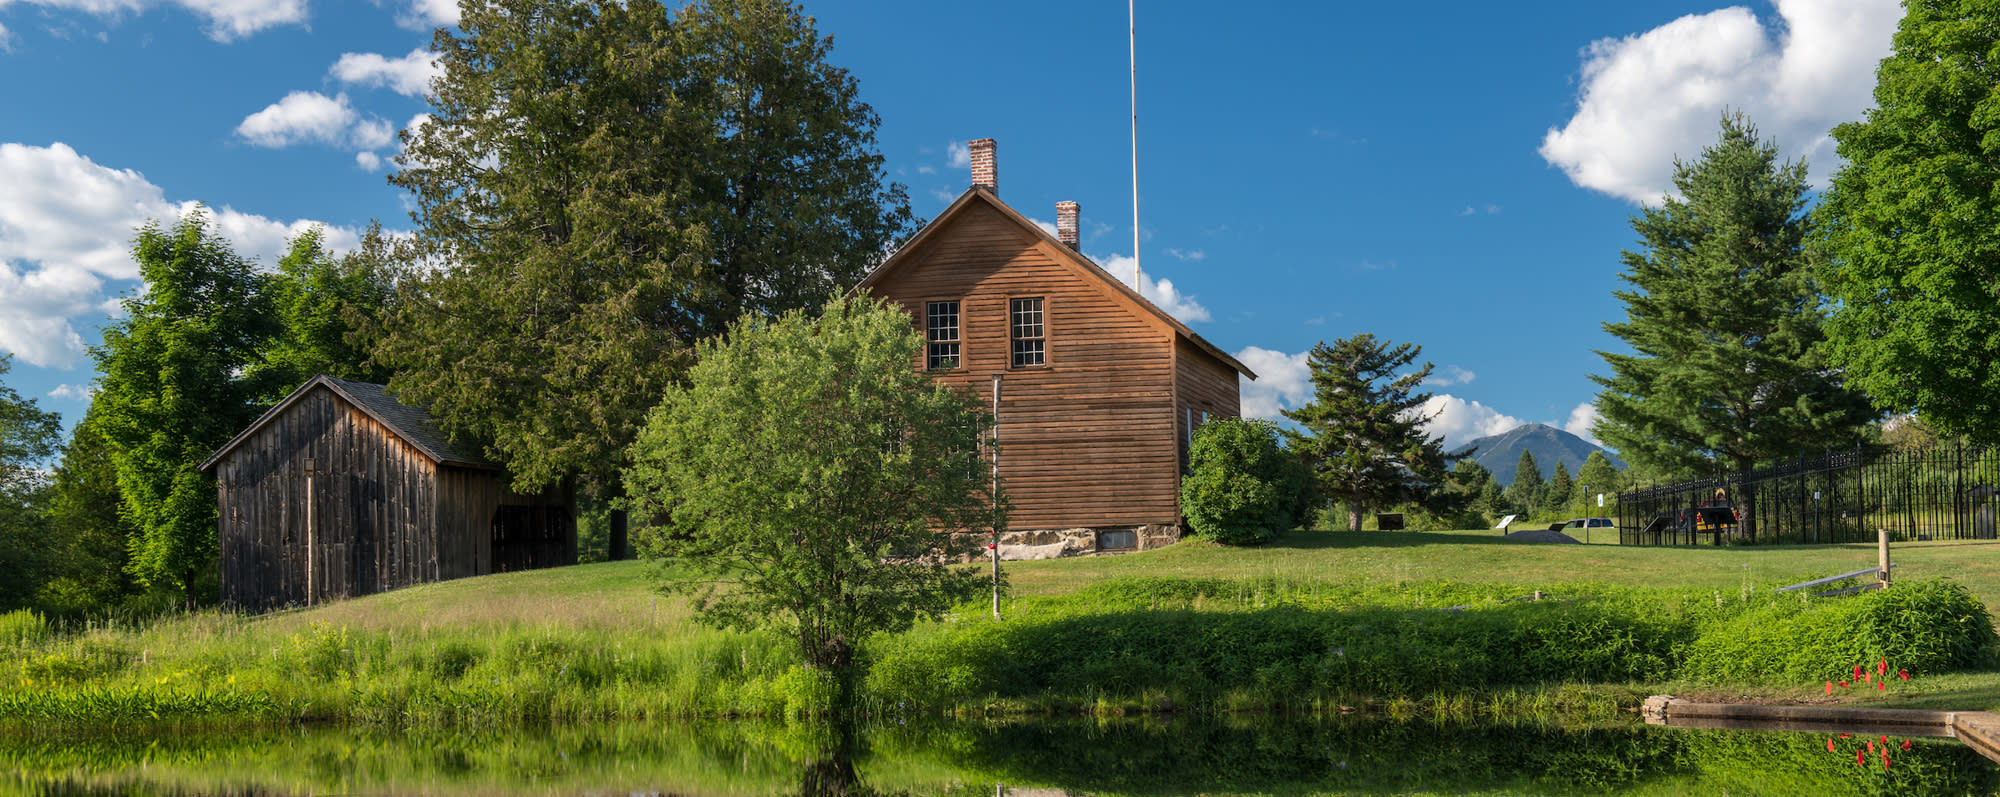 A picture of the exterior of the John Brown Farm State Historic Site